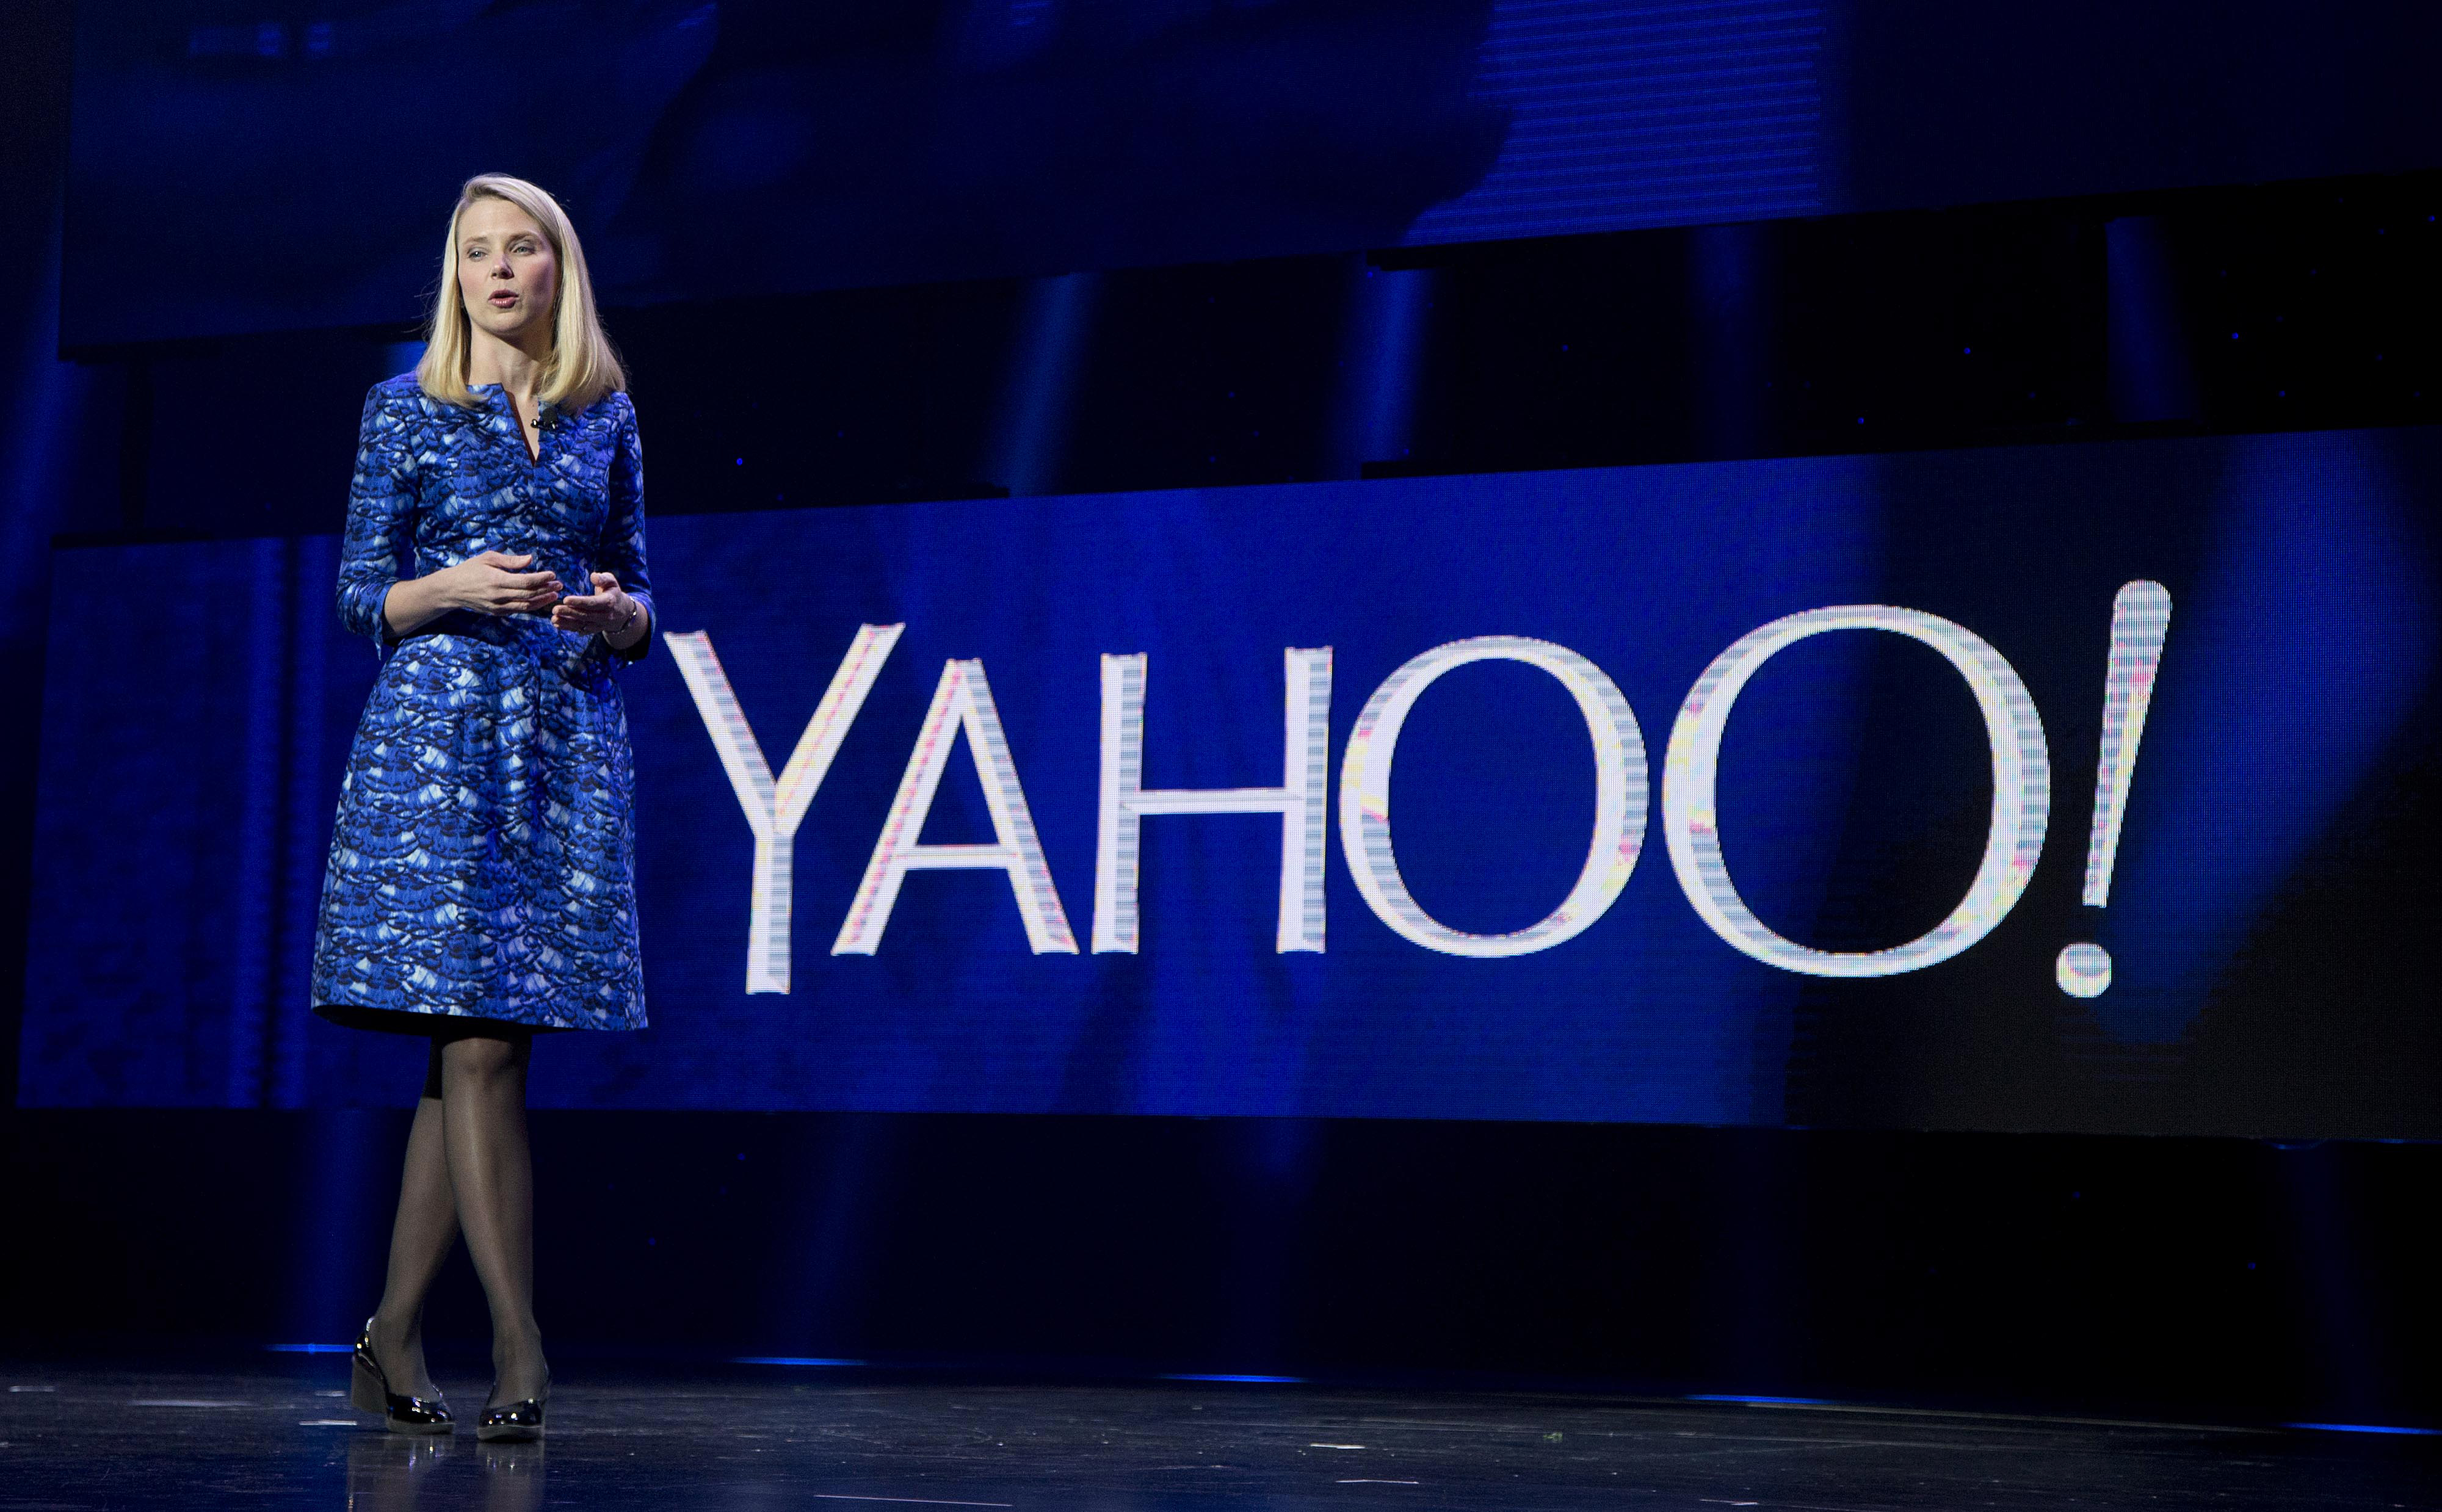 Yahoo President and CEO Marissa Mayer at the International Consumer Electronics Show in Las Vegas on Jan. 7, 2014. (AP Photo/Julie Jacobson)